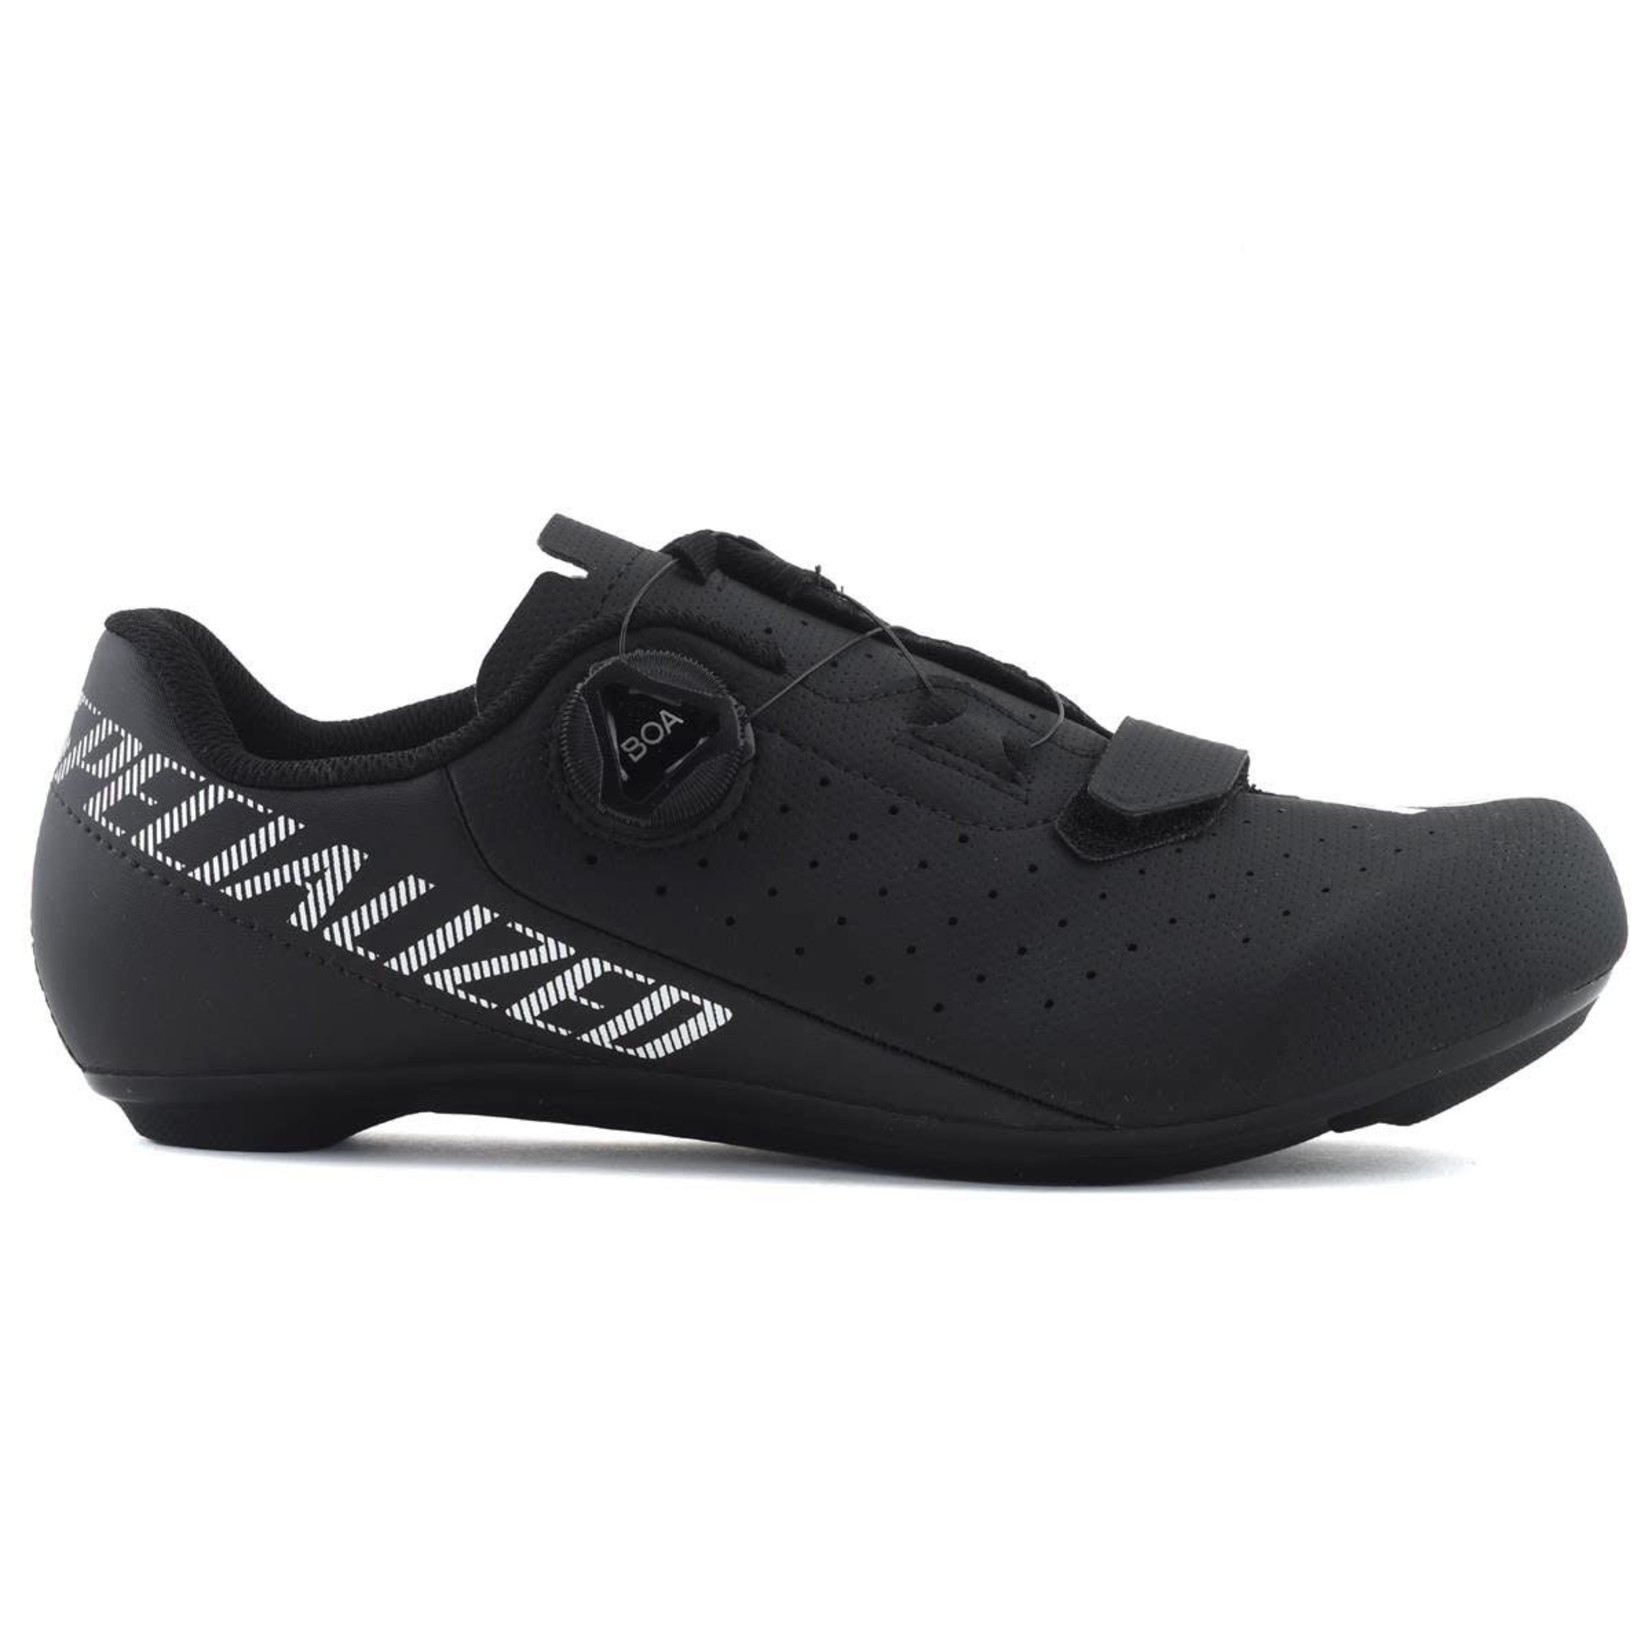 Specialized Torch 1.0 Road Shoe Black